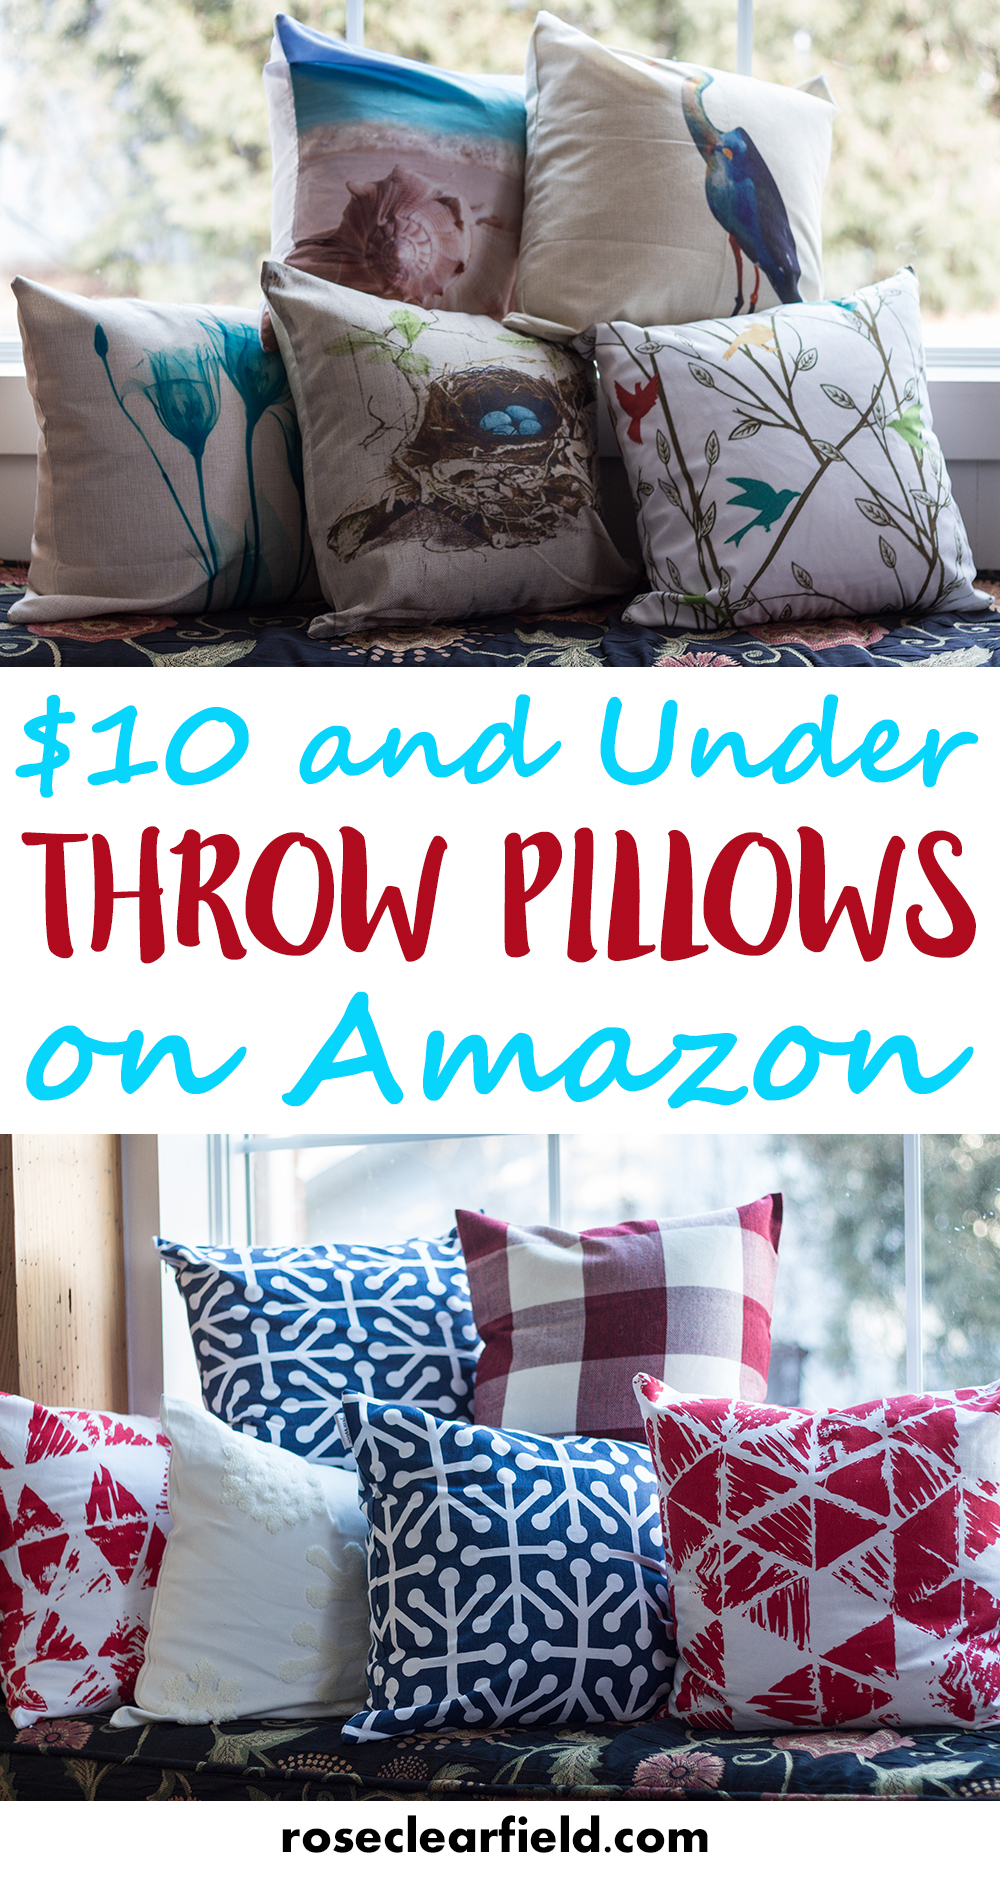 $10 and Under Throw Pillows on Amazon. Decorate your home beautifully without breaking the bank! | http://www.roseclearfield.com